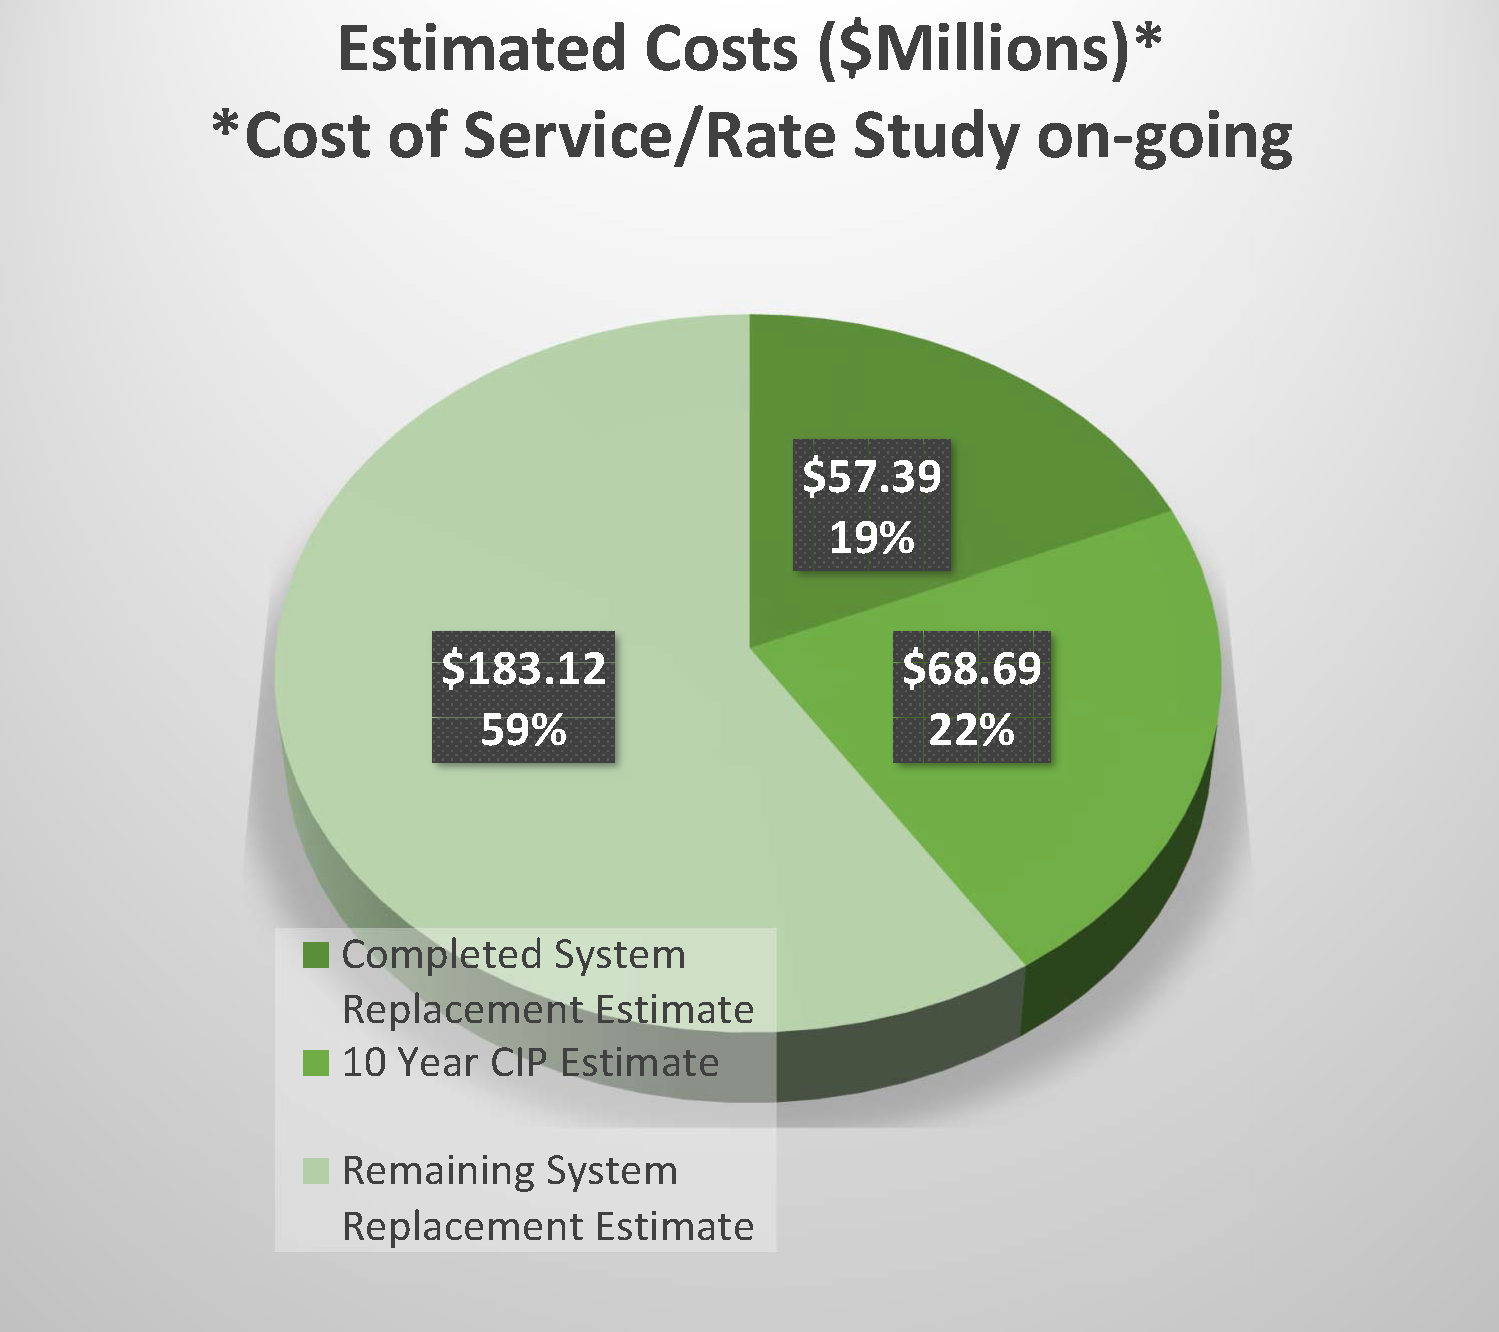 Water Main Replacement Costs Pie Chart